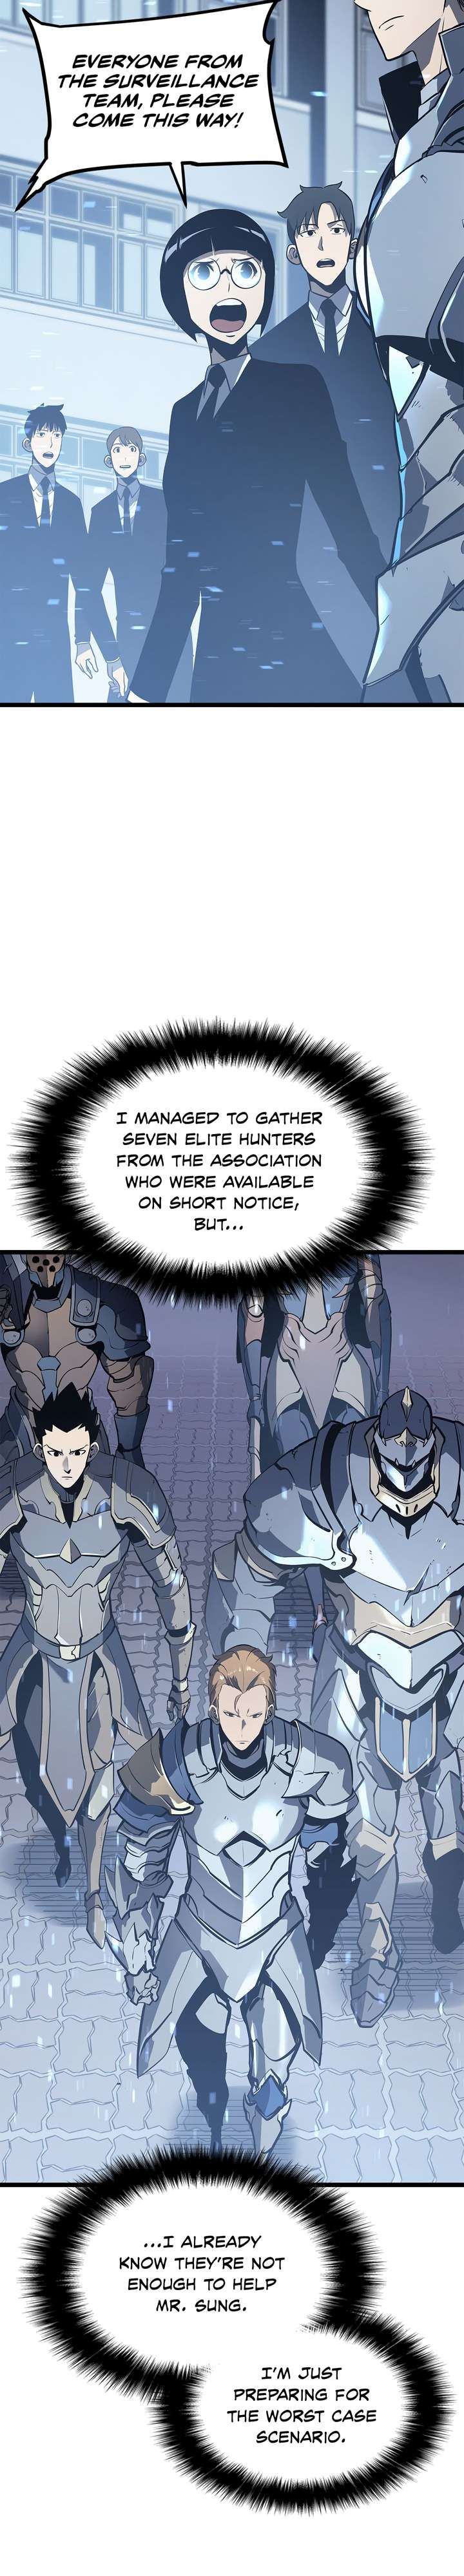 Solo Leveling Chapter 127 Page 2